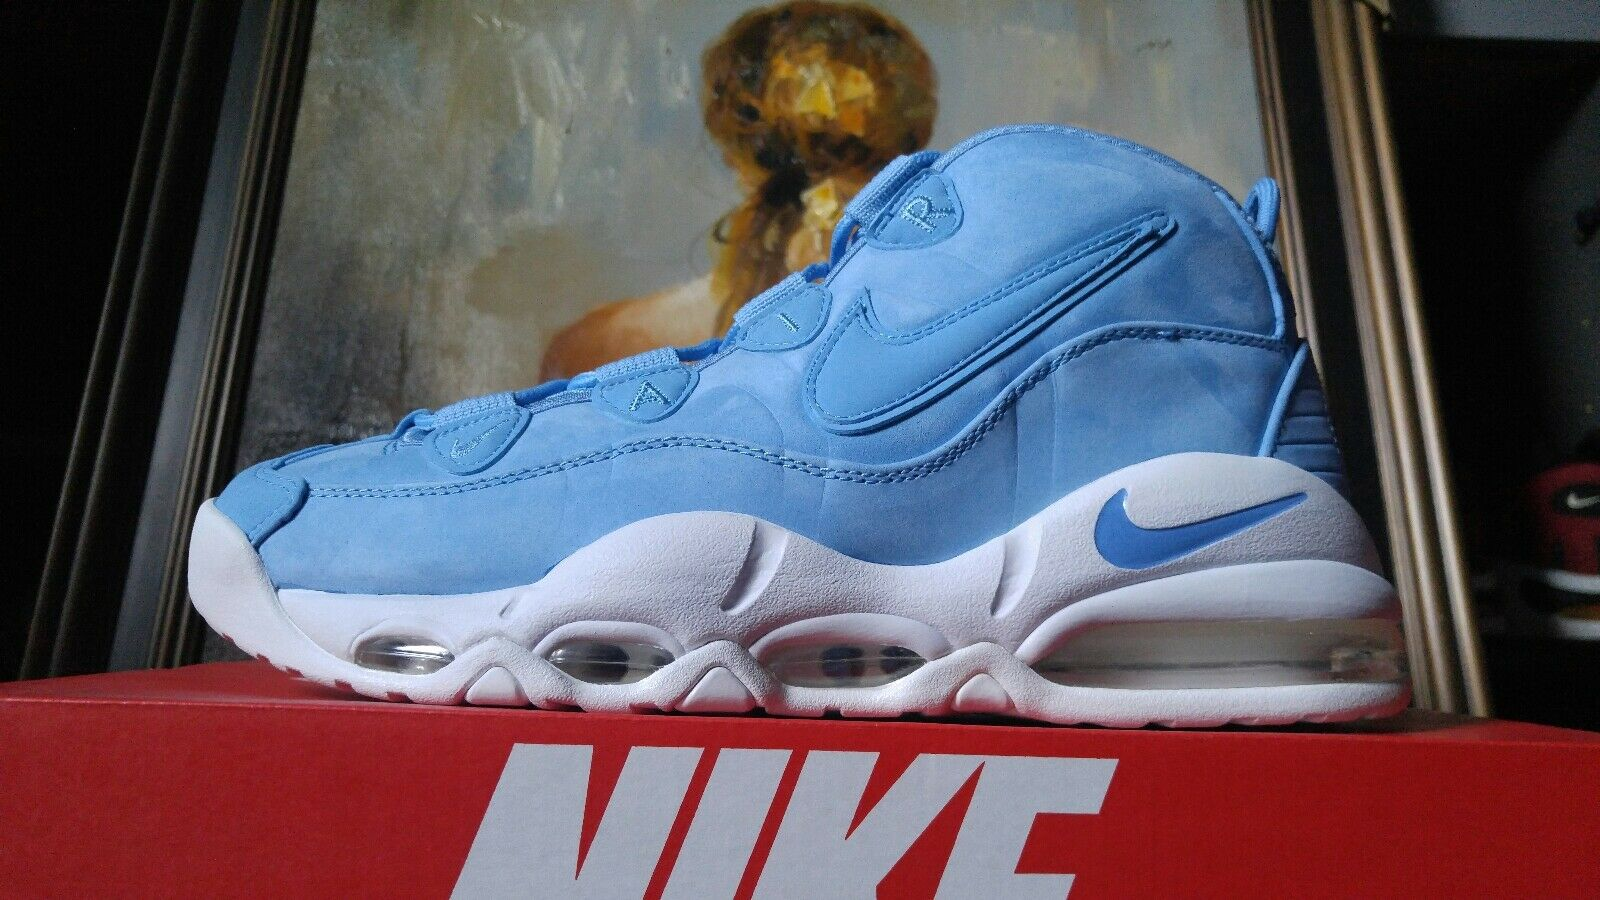 Nike Air Max Uptempo '95 AS QS Size 9 9.5 10 10.5 University Carolina bluee